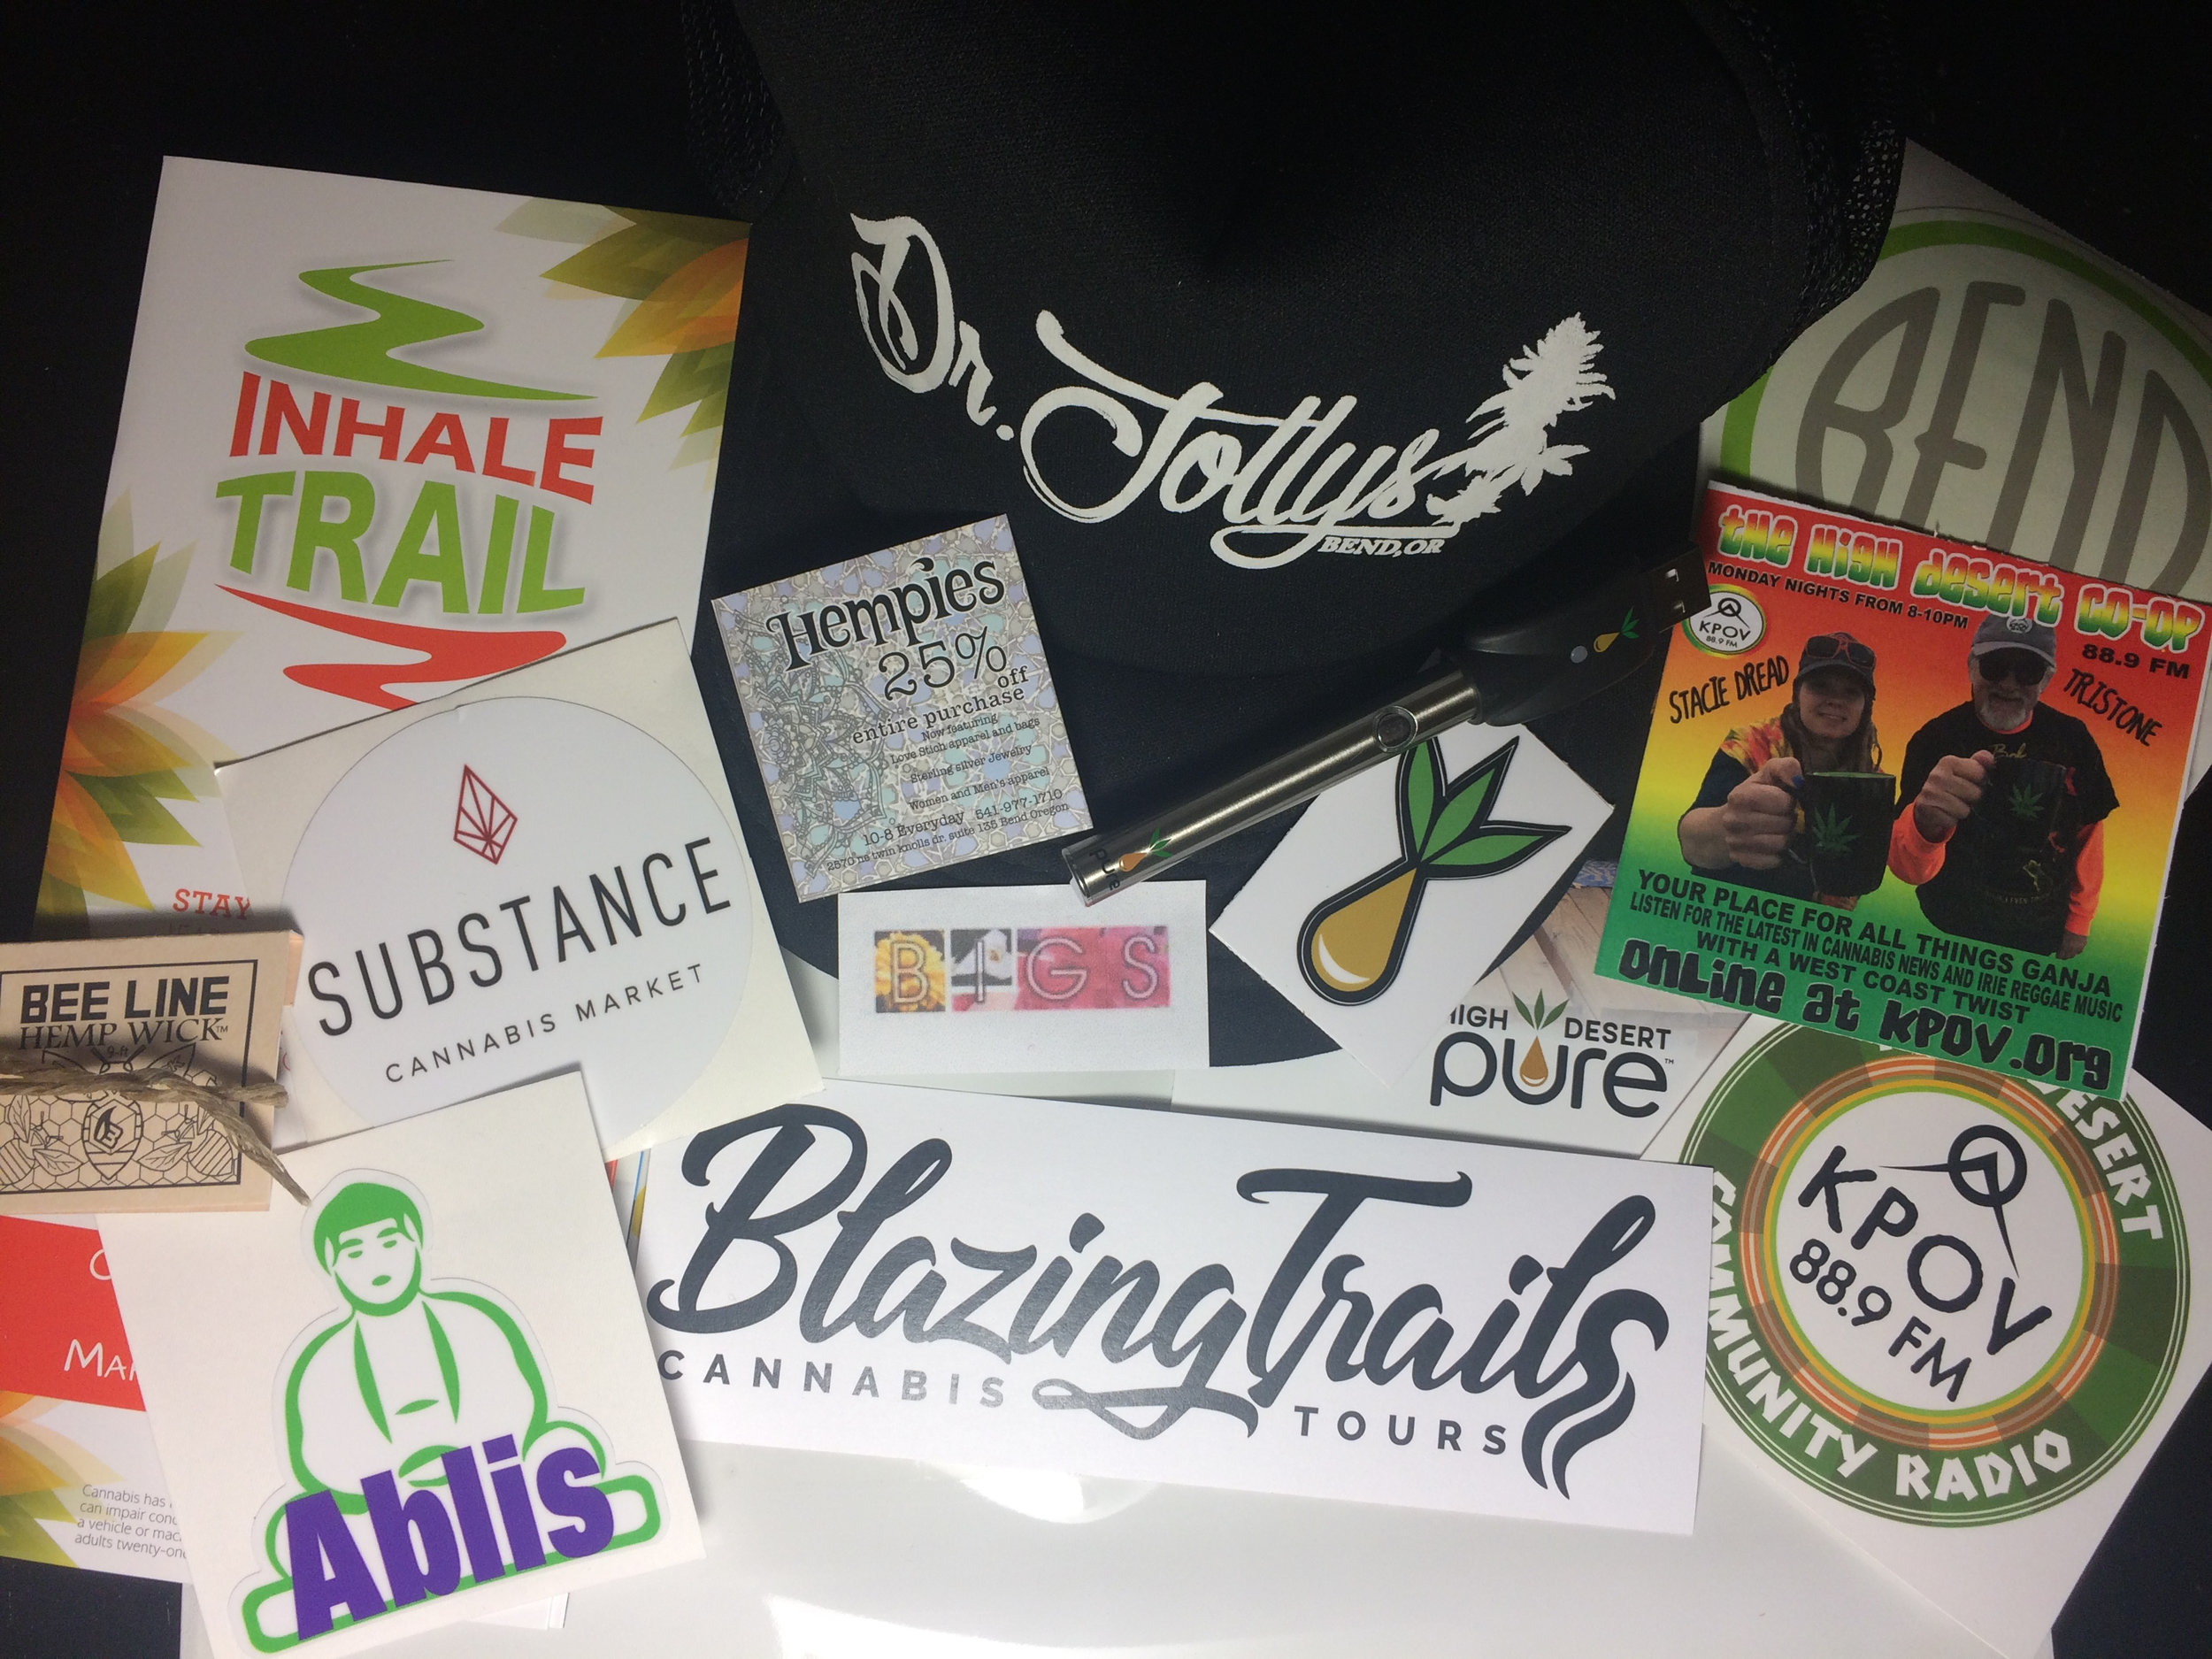 Tours also include:cannabis consumer safety info,Oregon history and laws,cannabis science anda swag bag valued at over $50 in gifts and coupons! -